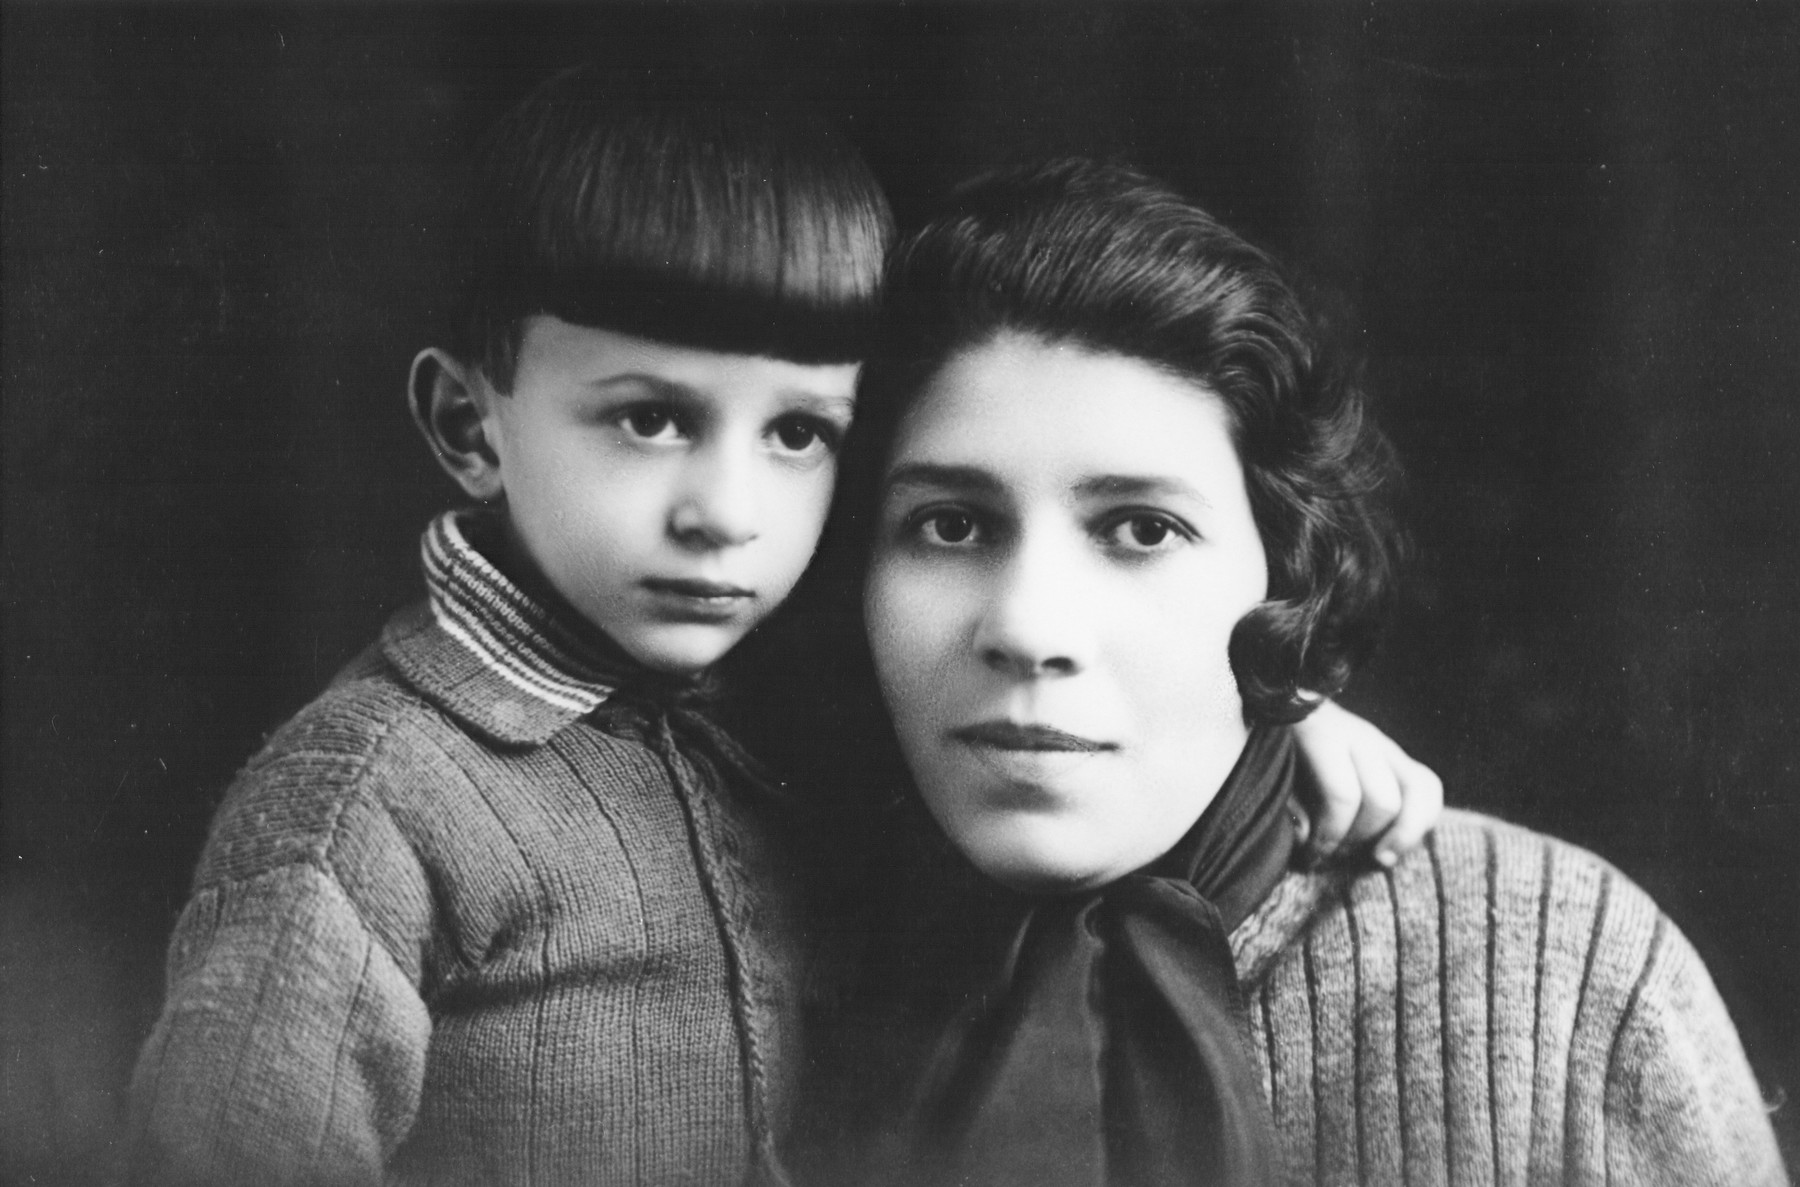 Studio portrait of a mother and child.  The mother is the sister of Joseph Halter.